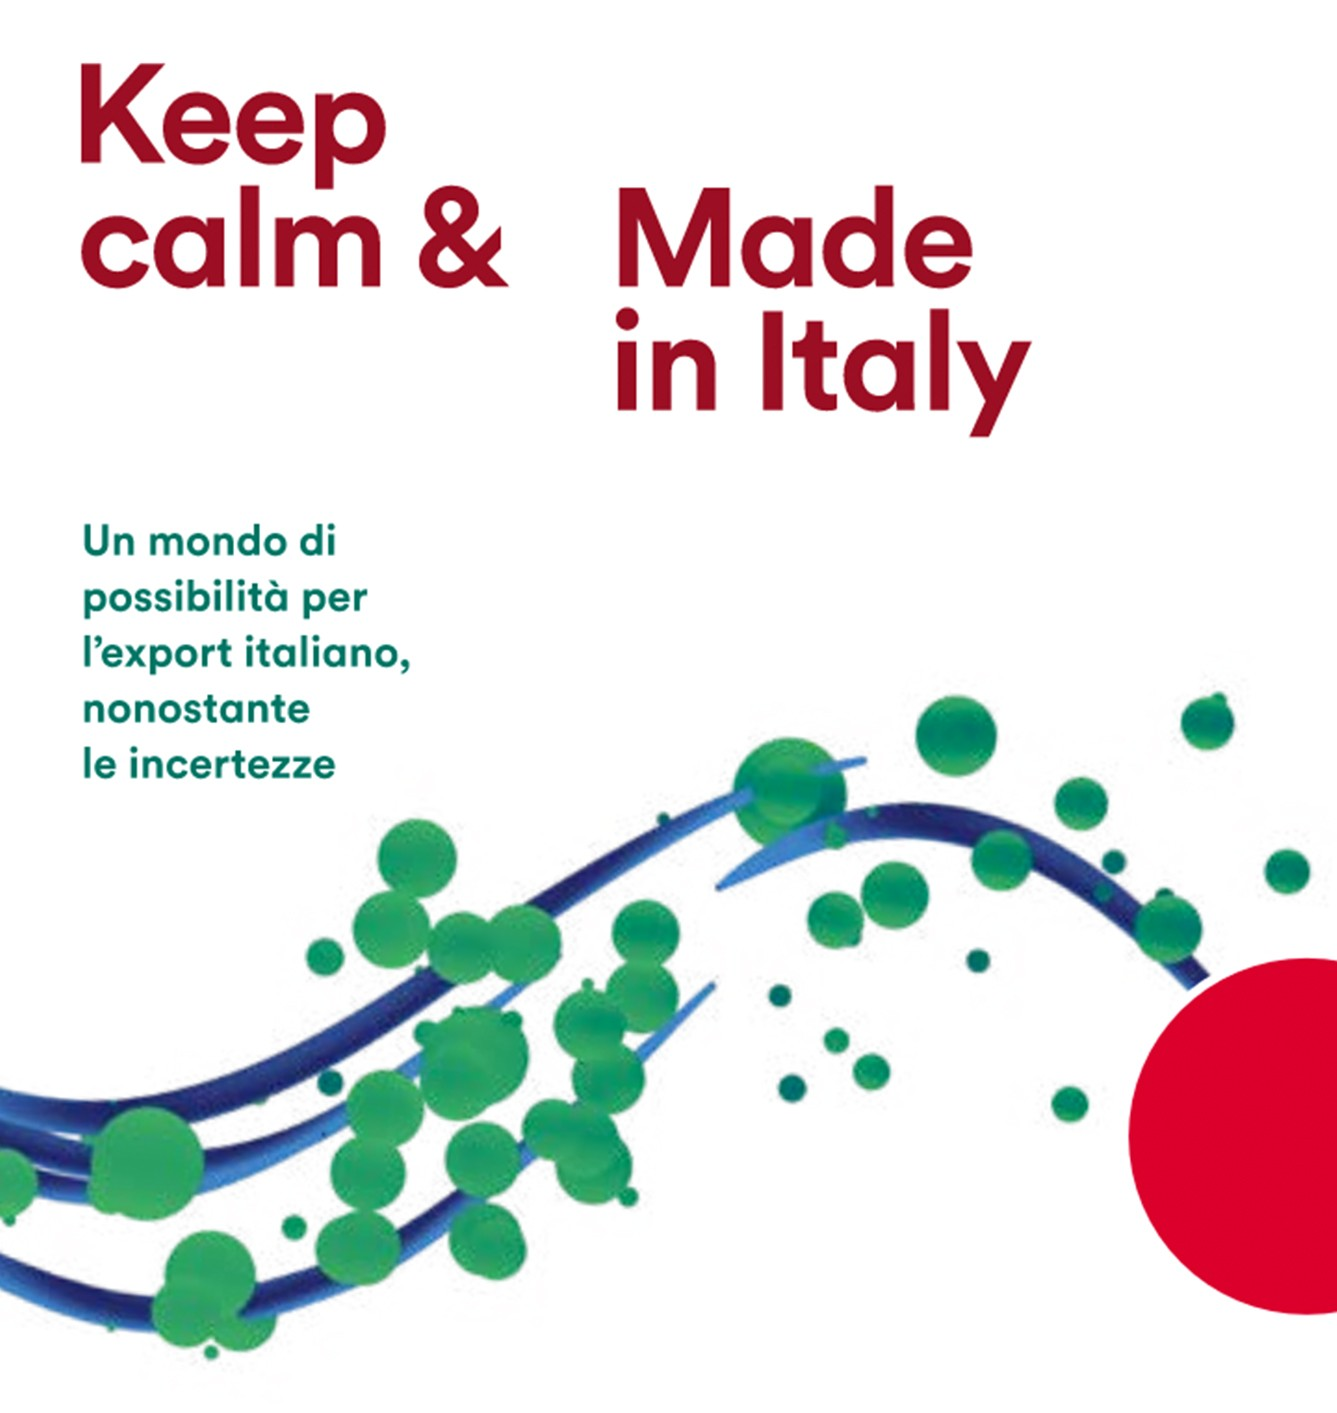 Keep_calm_made_in_Italy